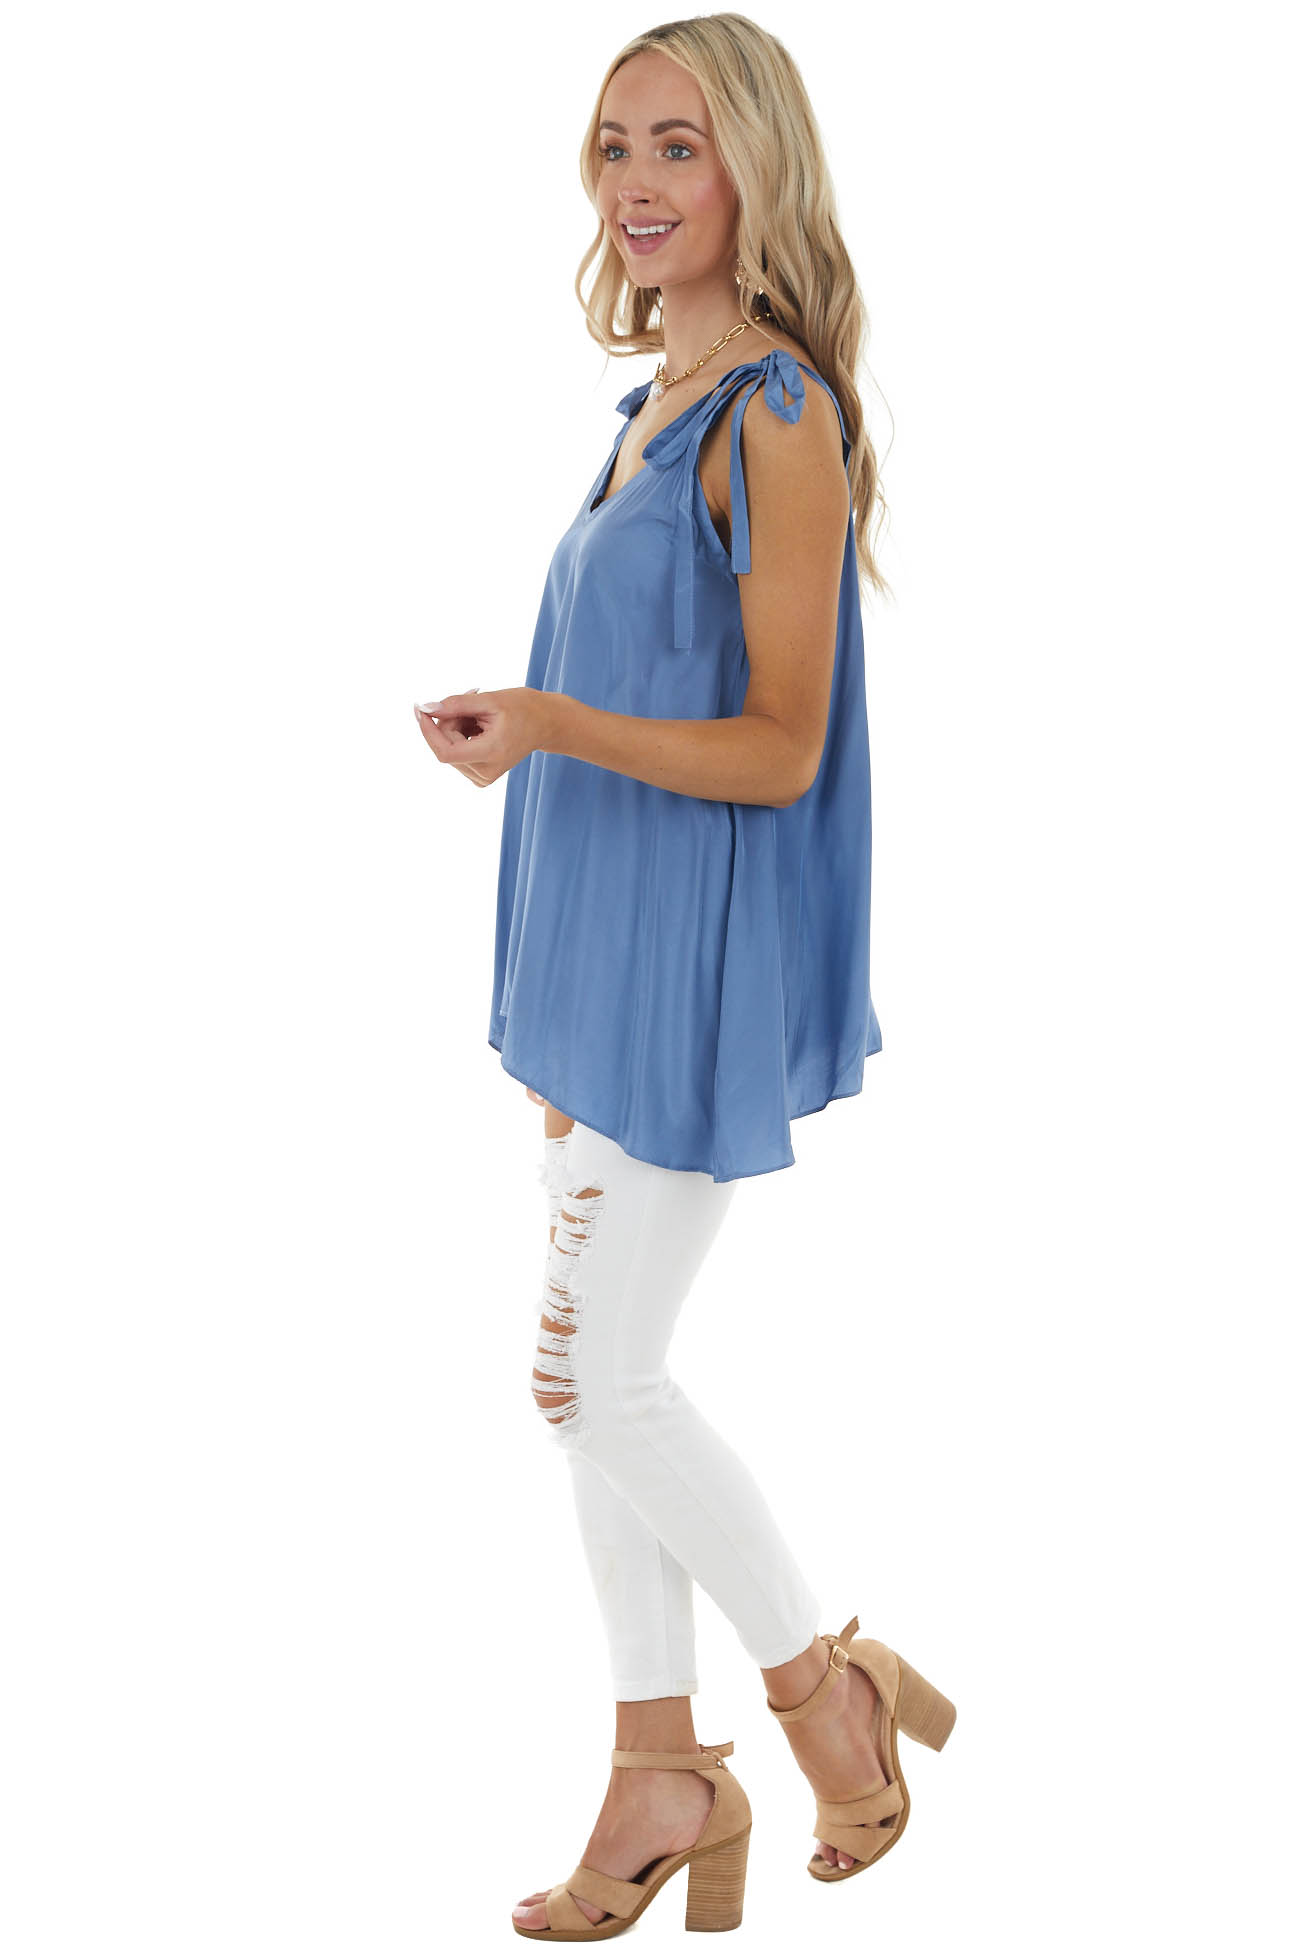 Dusty Blue Sleeveless Woven Satin Blouse with Tie Straps